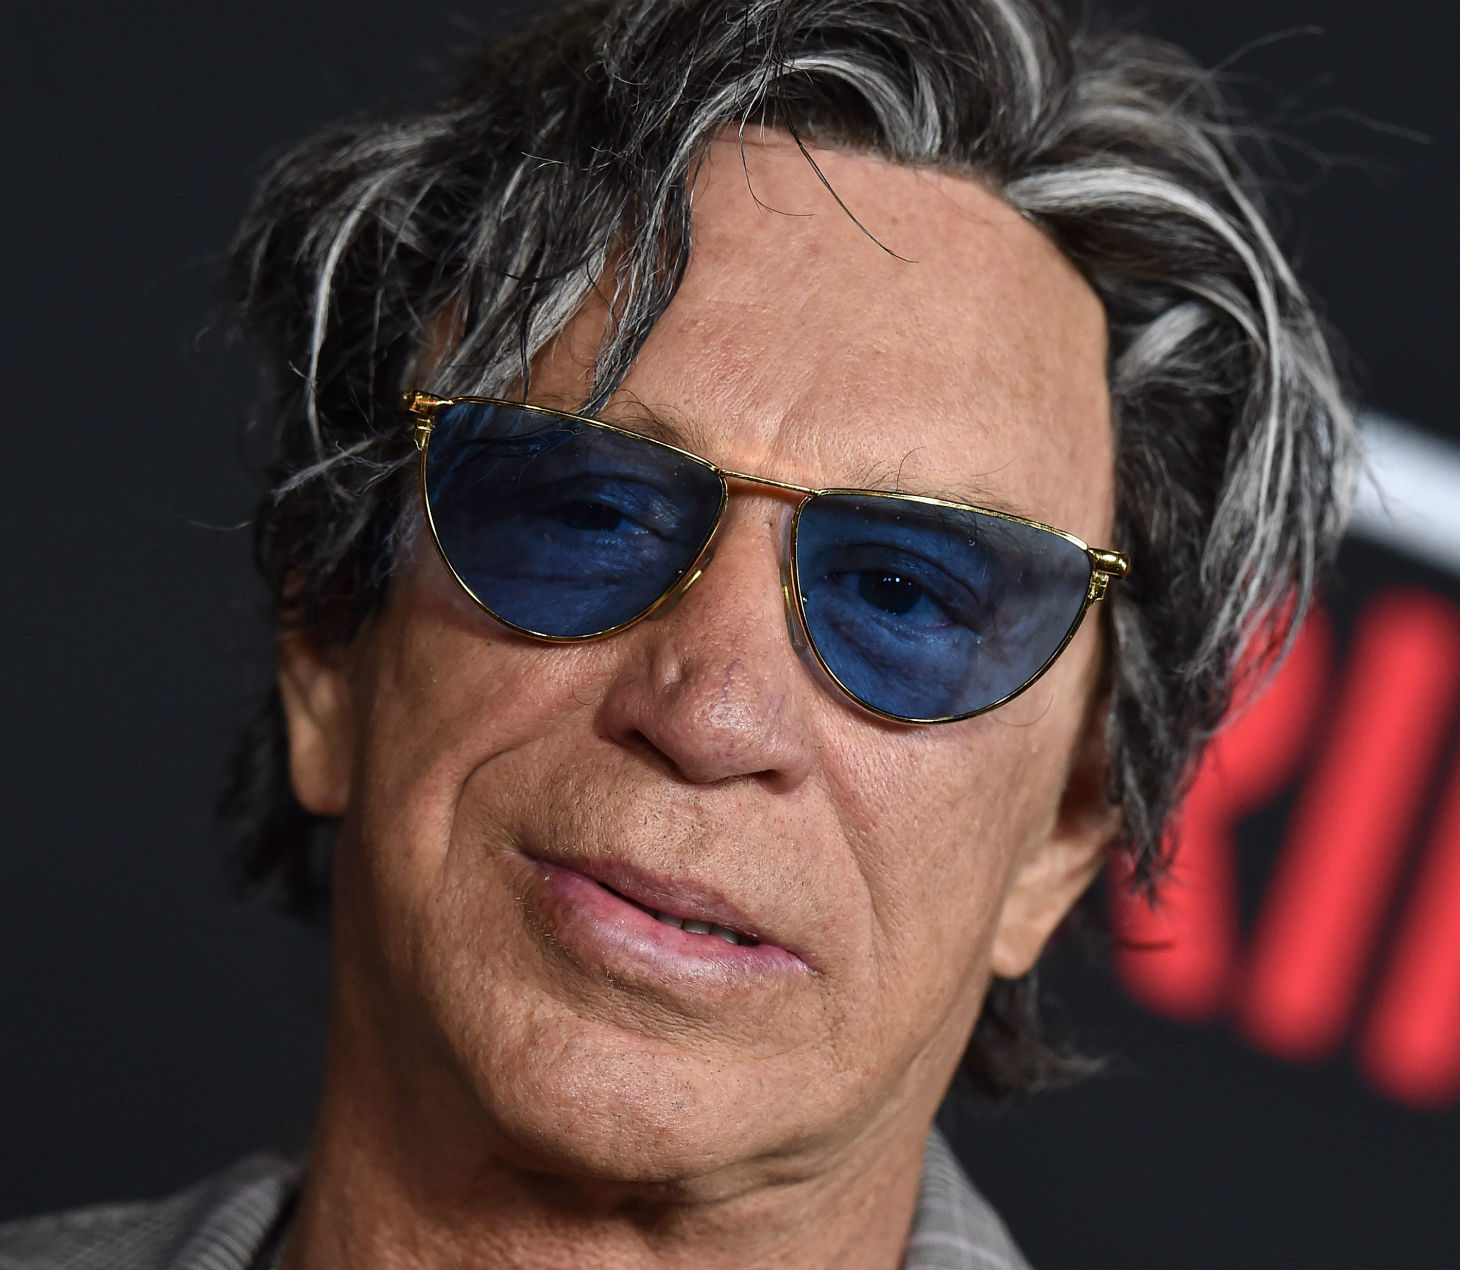 16 9 e1600777463357 20 Things You Never Knew About Mickey Rourke